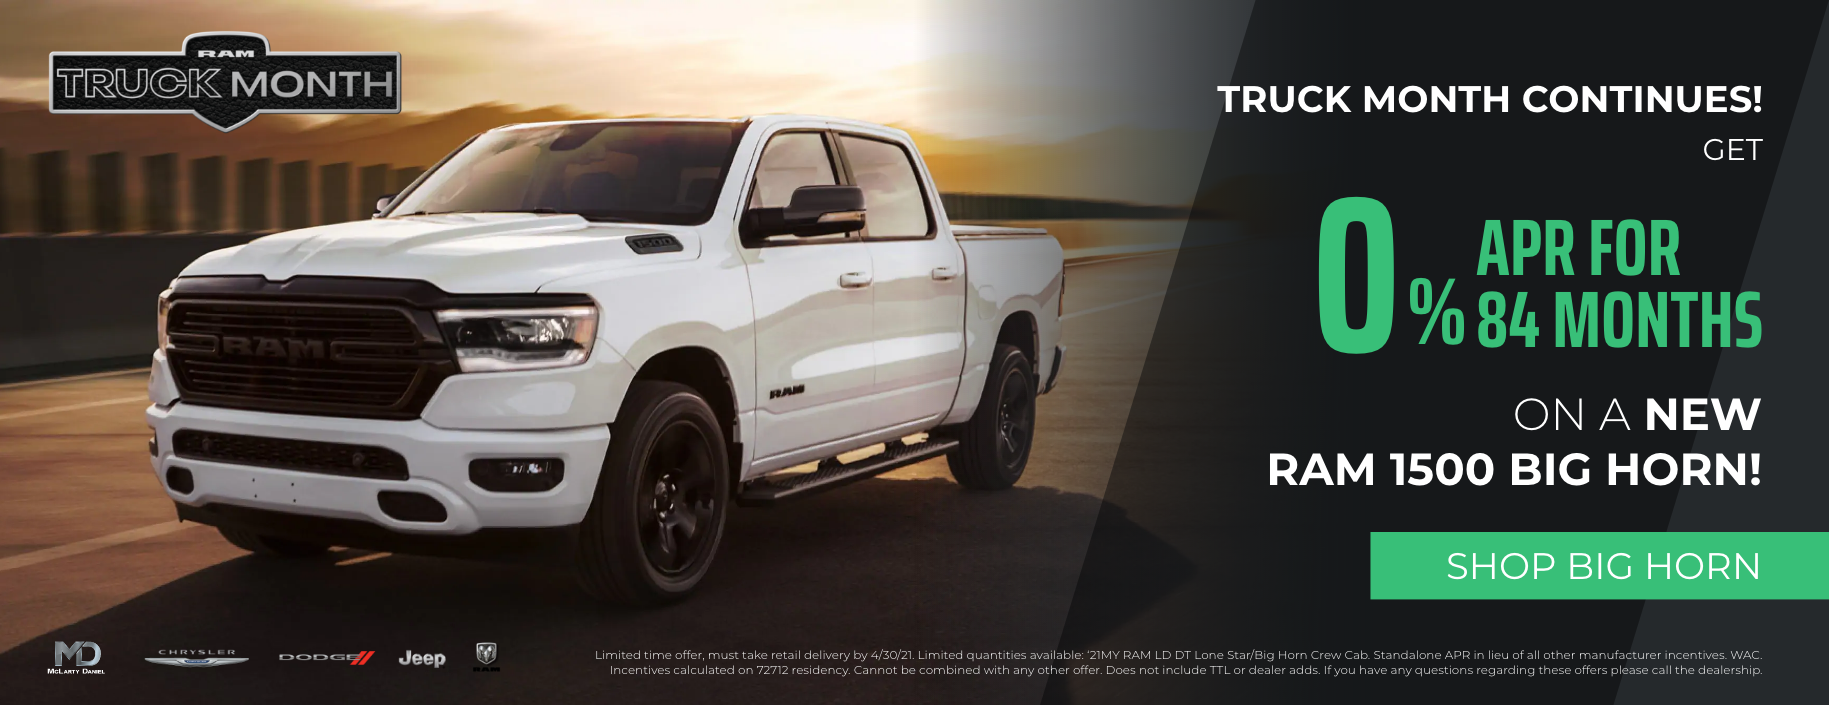 Get 0% APR for 84 months on Ram 1500 Big Horn